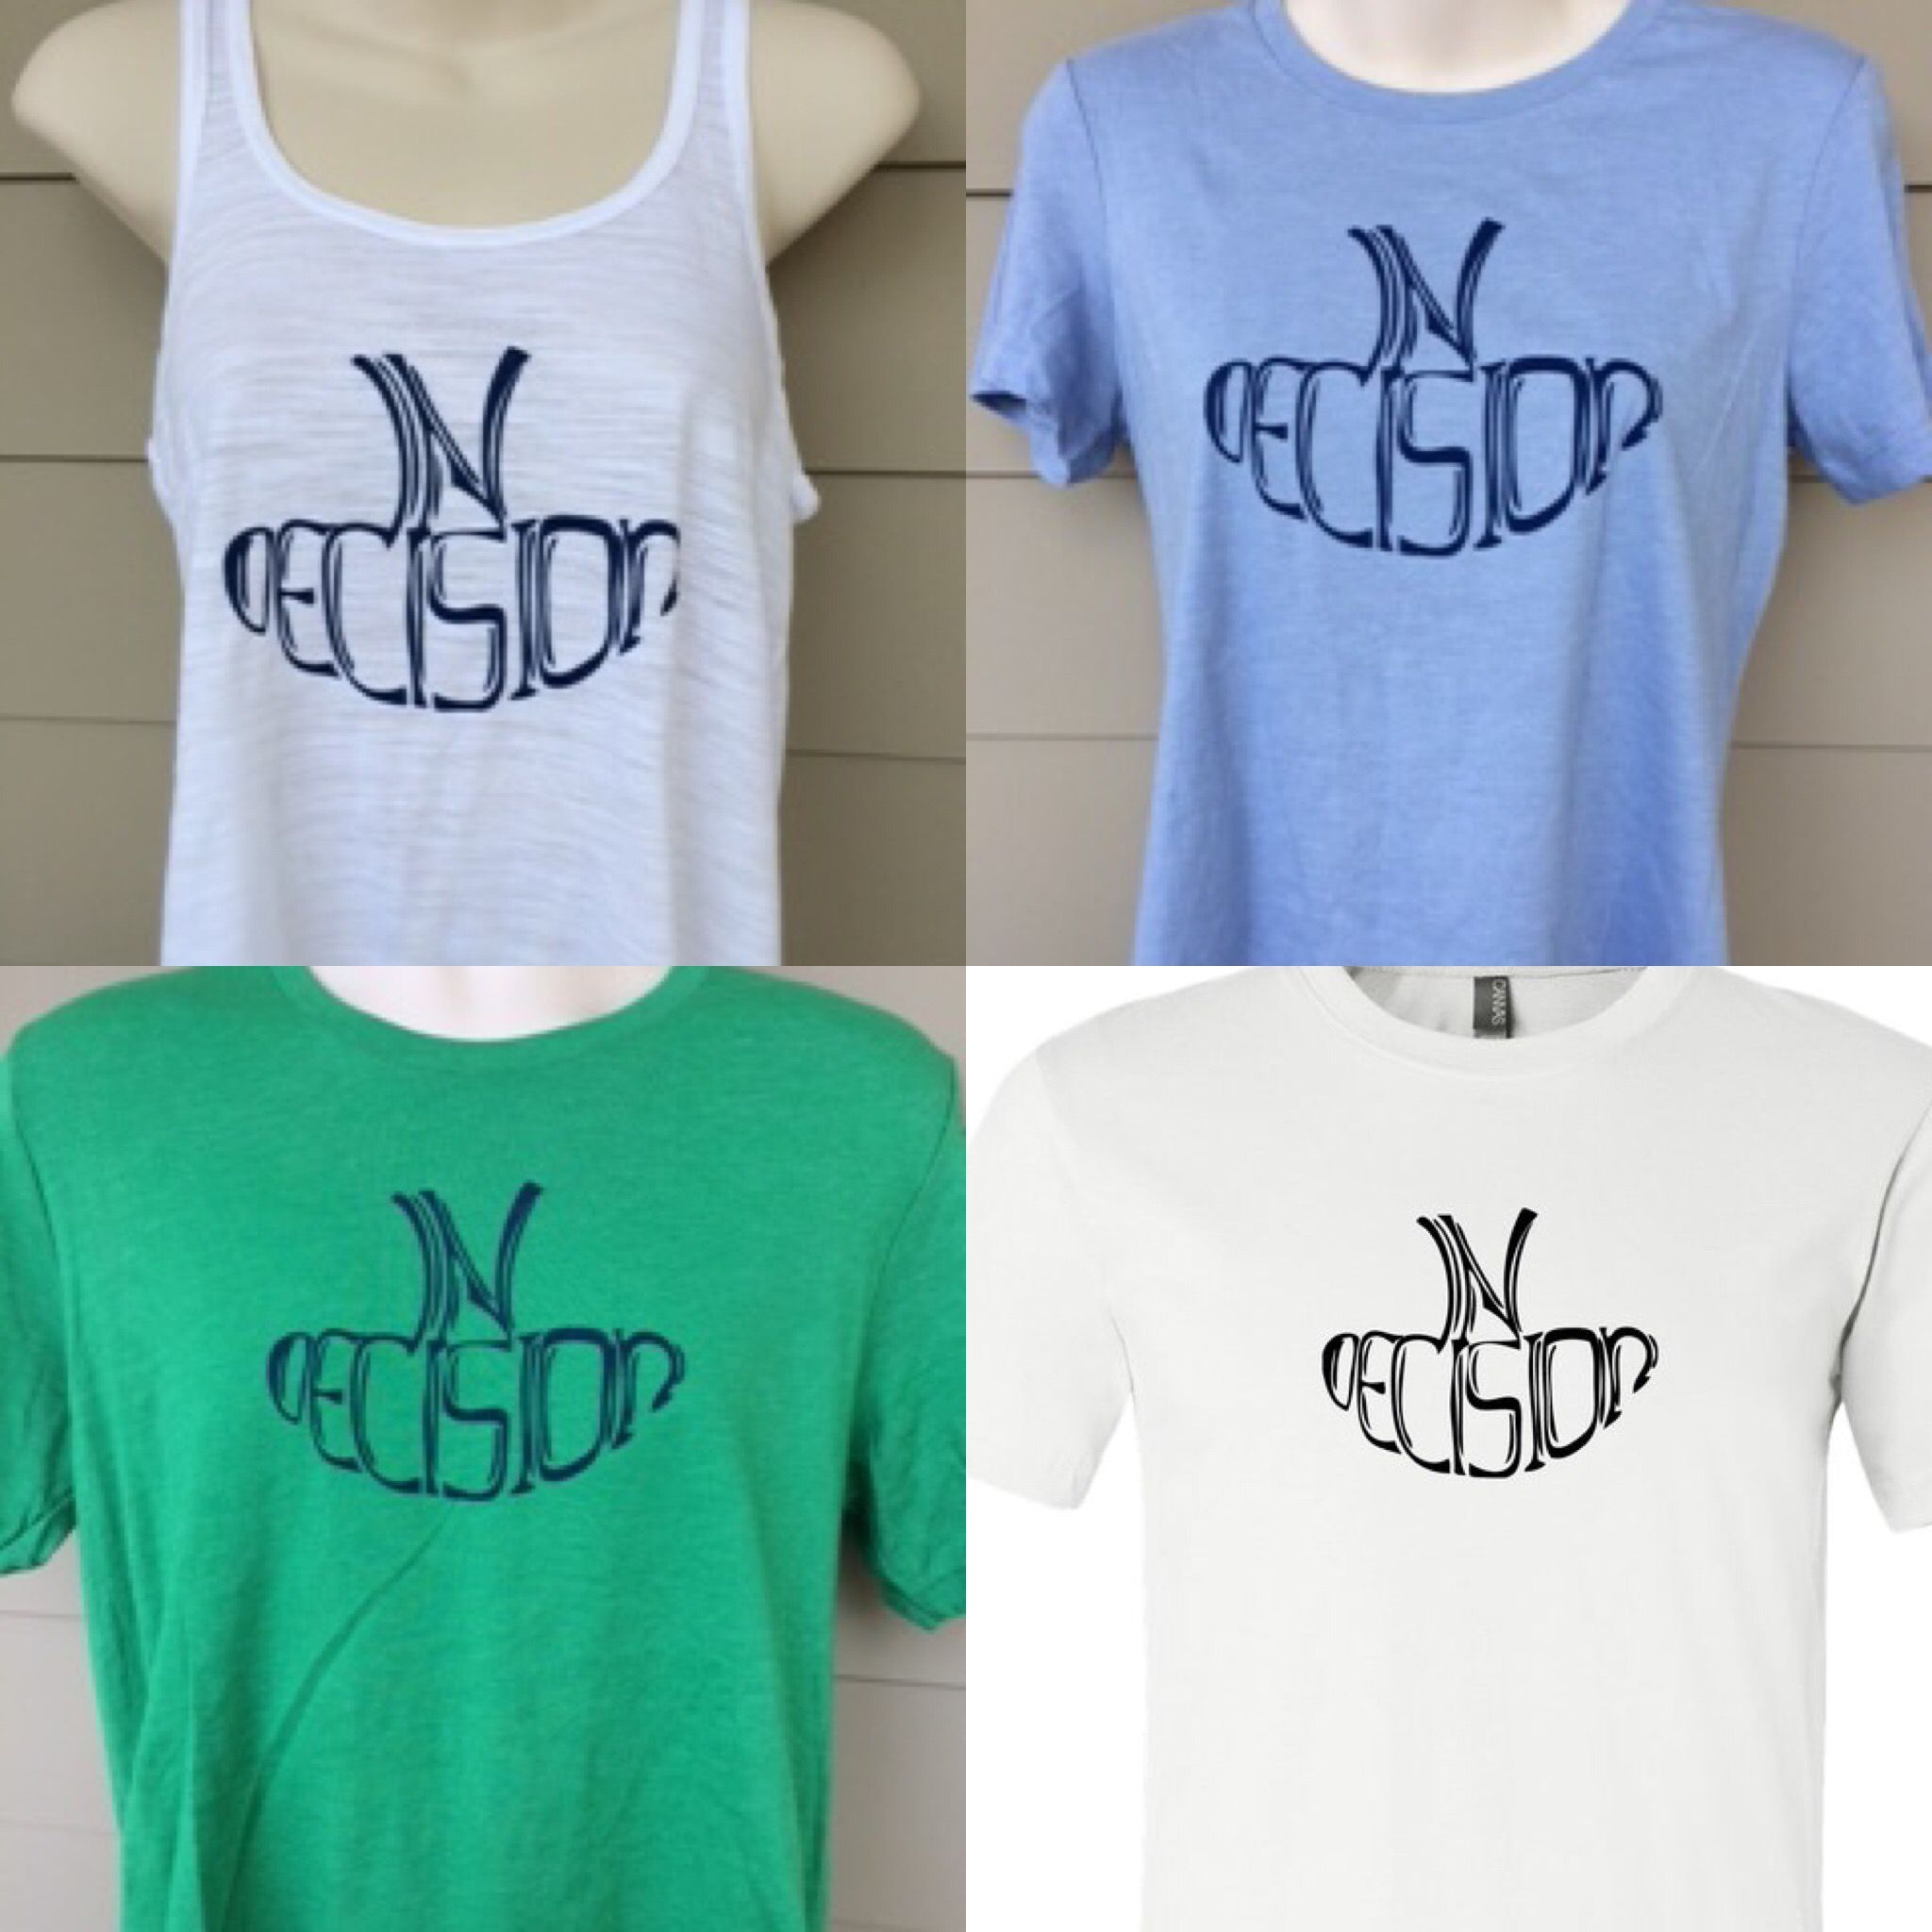 We'll be slingin' these Indecision tees and tanks plus all